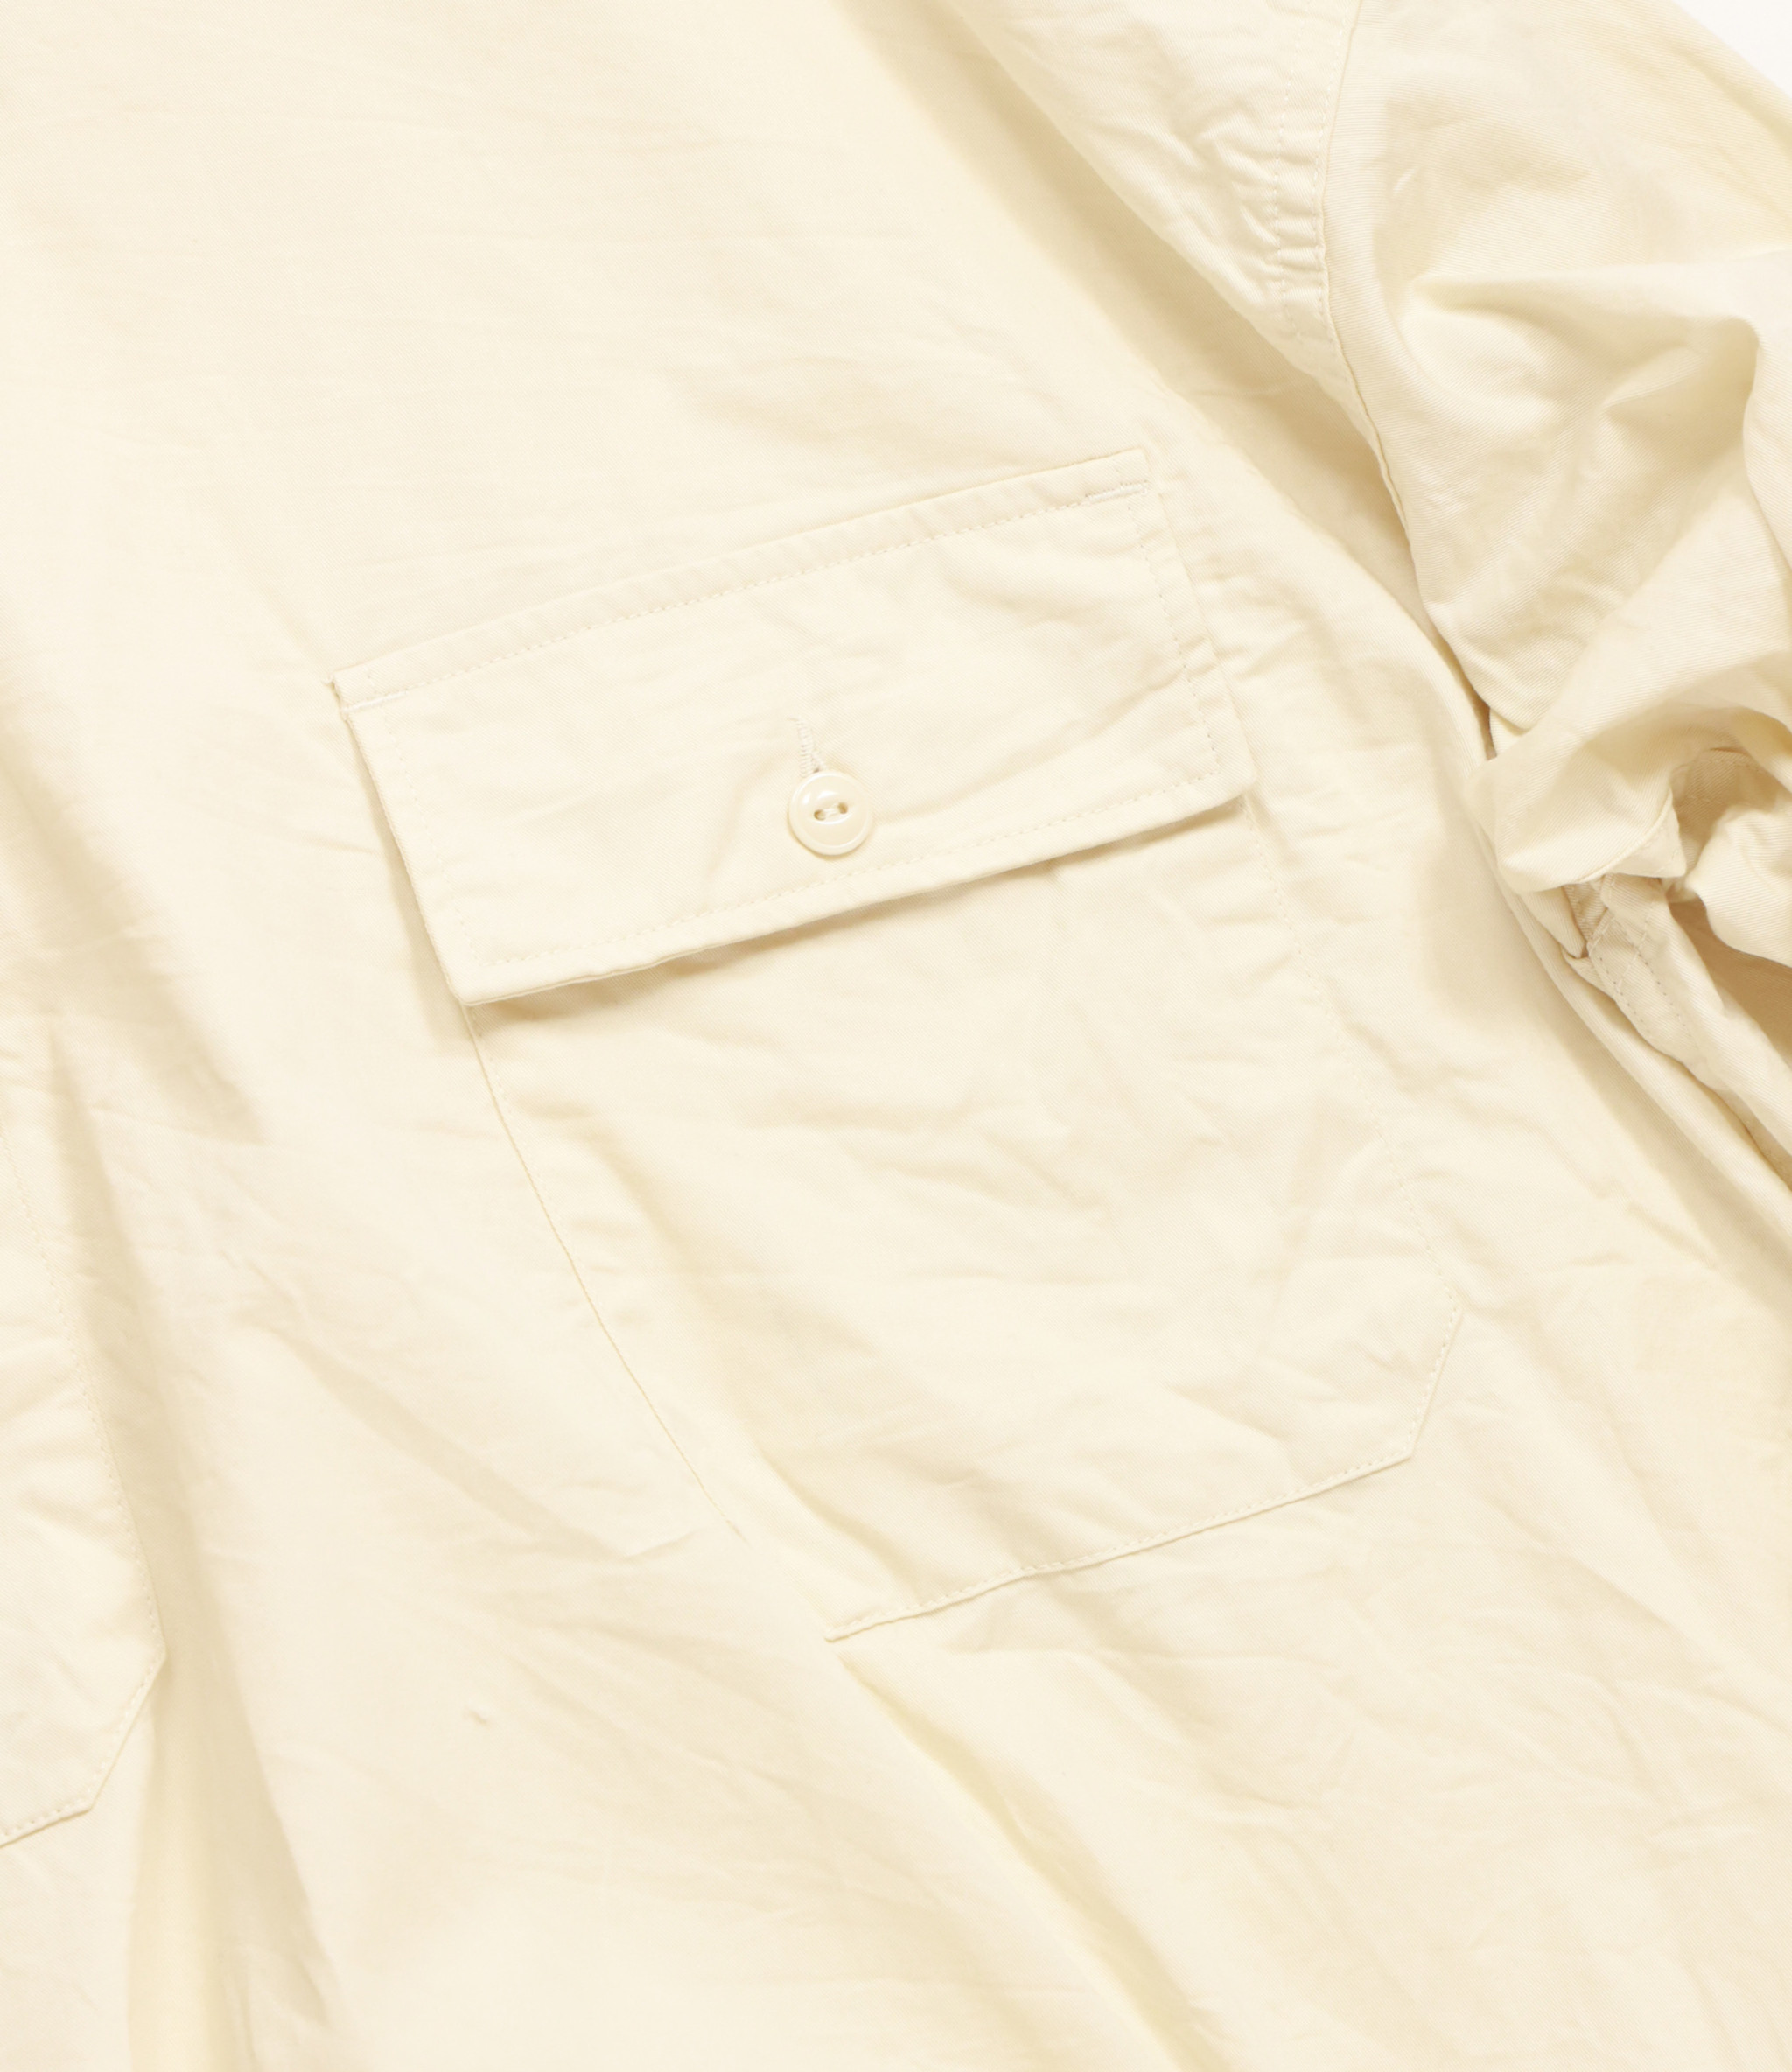 Engineered Garments Cagoule Shirt - Ivory Cotton Fineline Twill